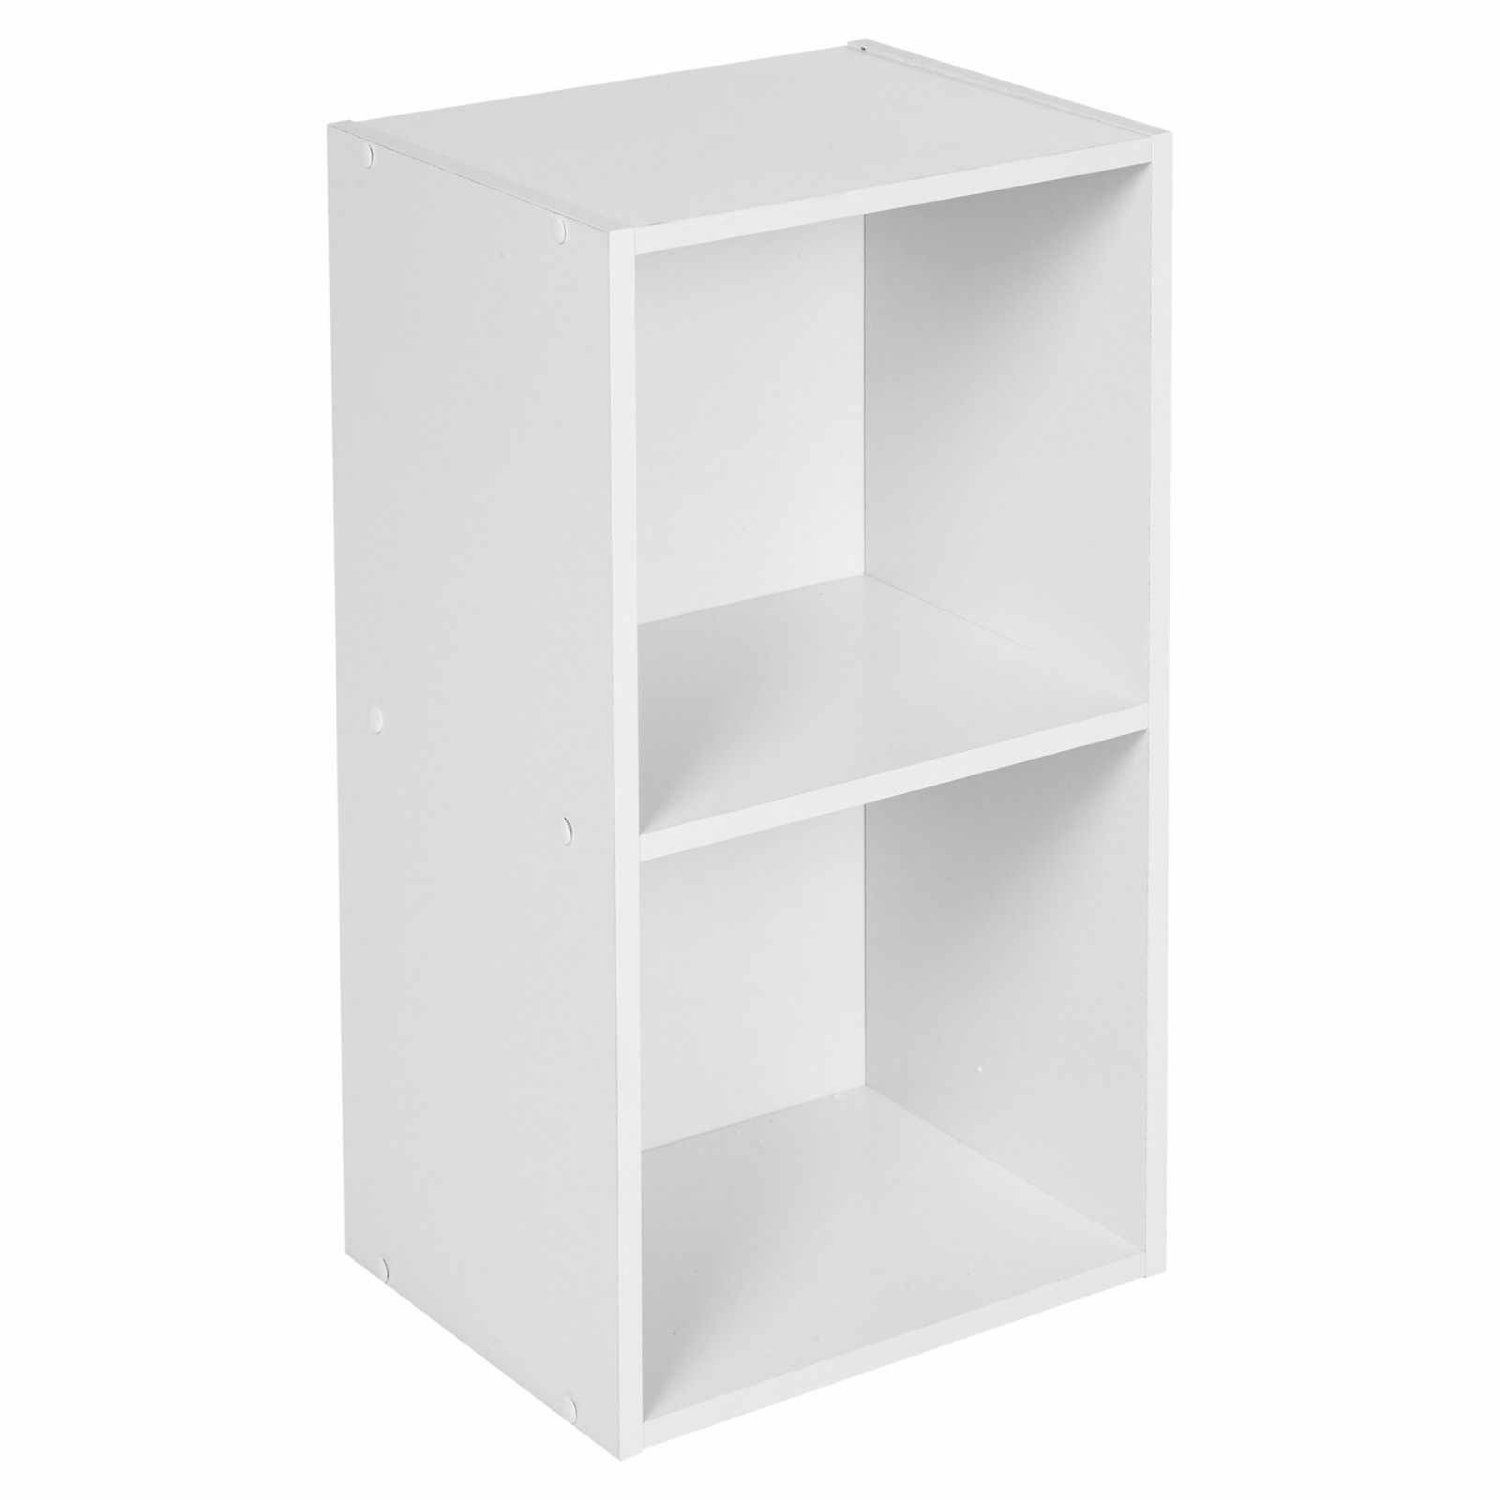 Wooden-Storage-Unit-Cube-2-3-4-Tier-Strong-Bookcase-Shelving-Home-Office-Display thumbnail 3